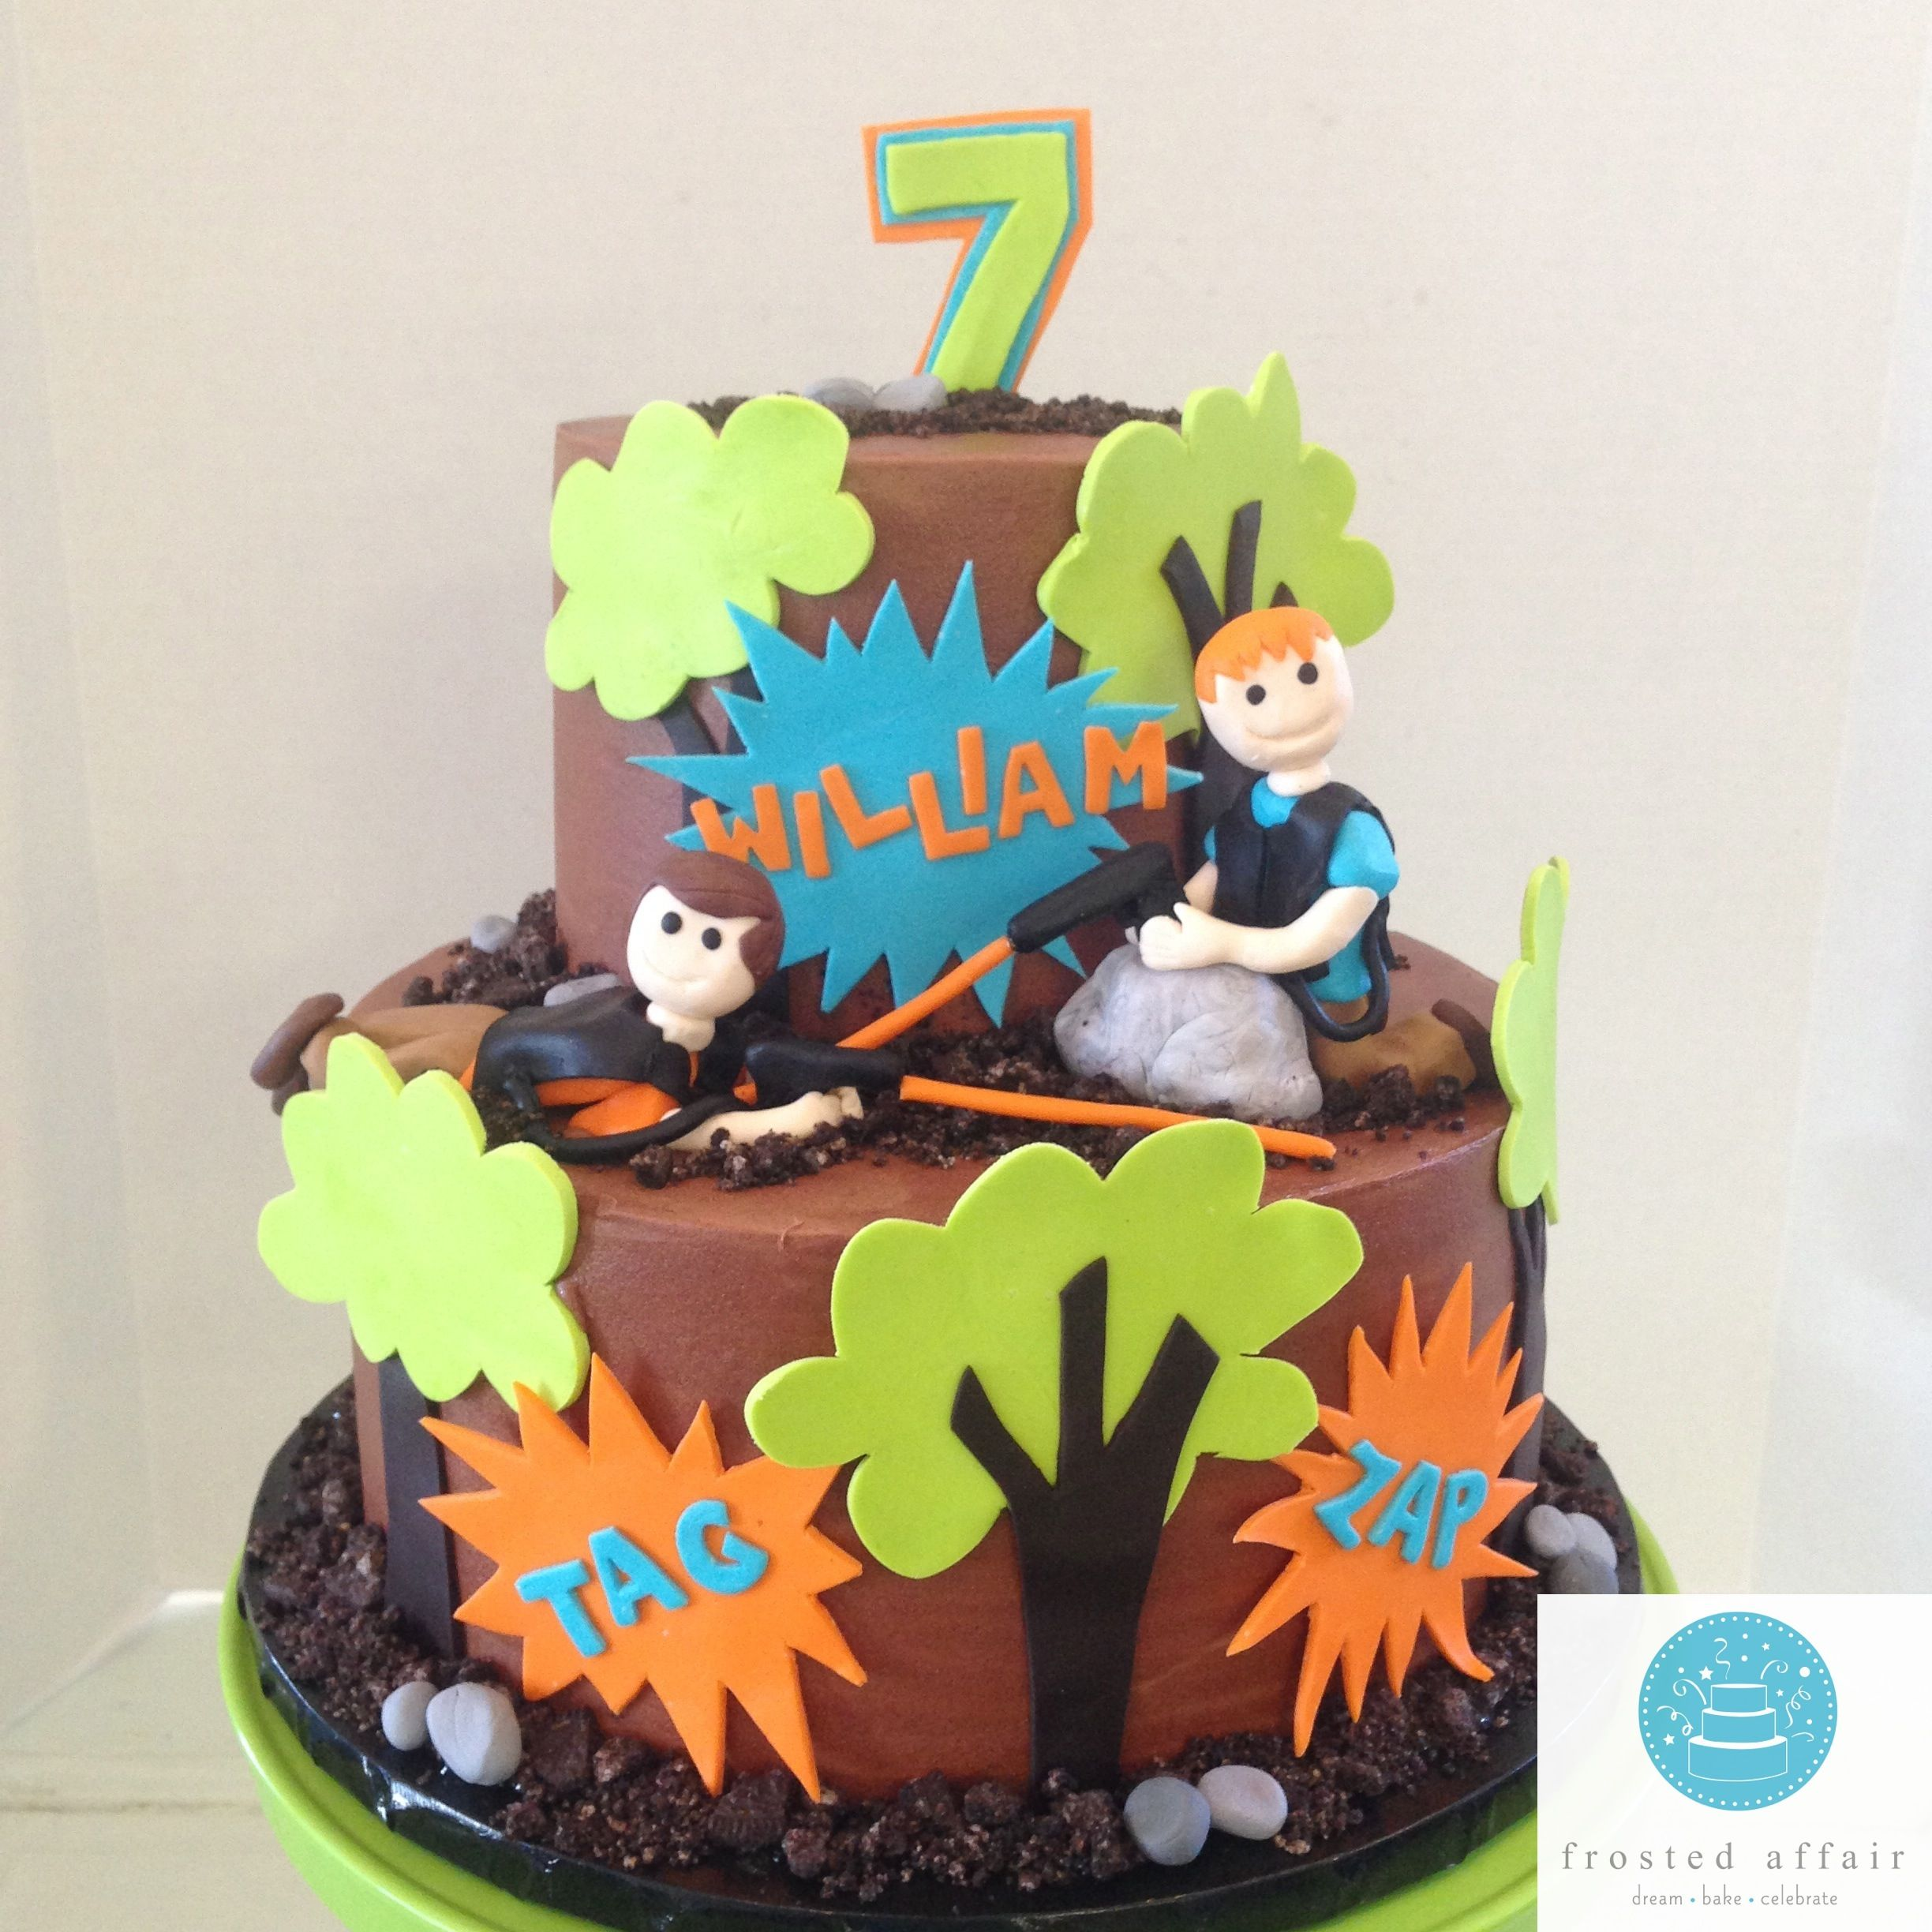 Buttercream Cake Made For An Outdoor Laser Tag Party Laser Tag Party Laser Tag Birthday Party Laser Tag Birthday